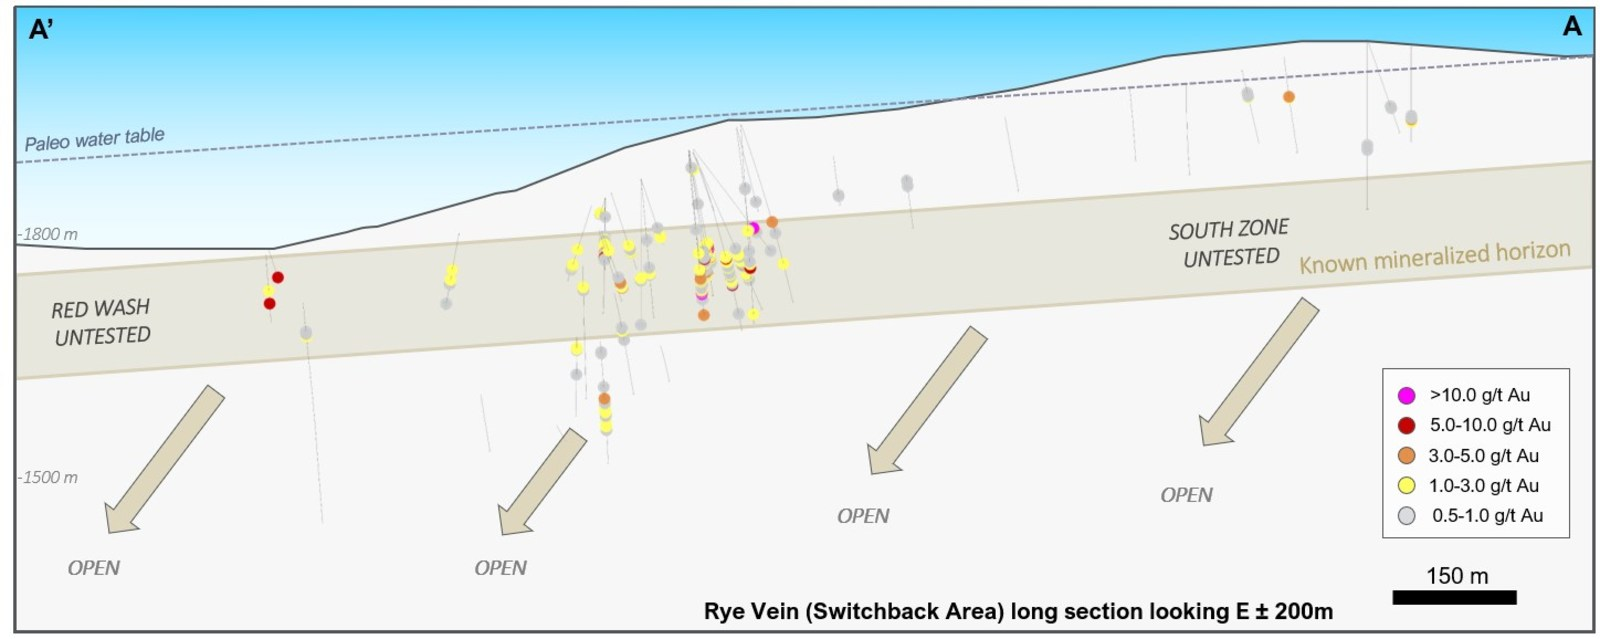 Figure 2 – Longitudinal view of the Rye Vein looking East presenting the historical drill holes